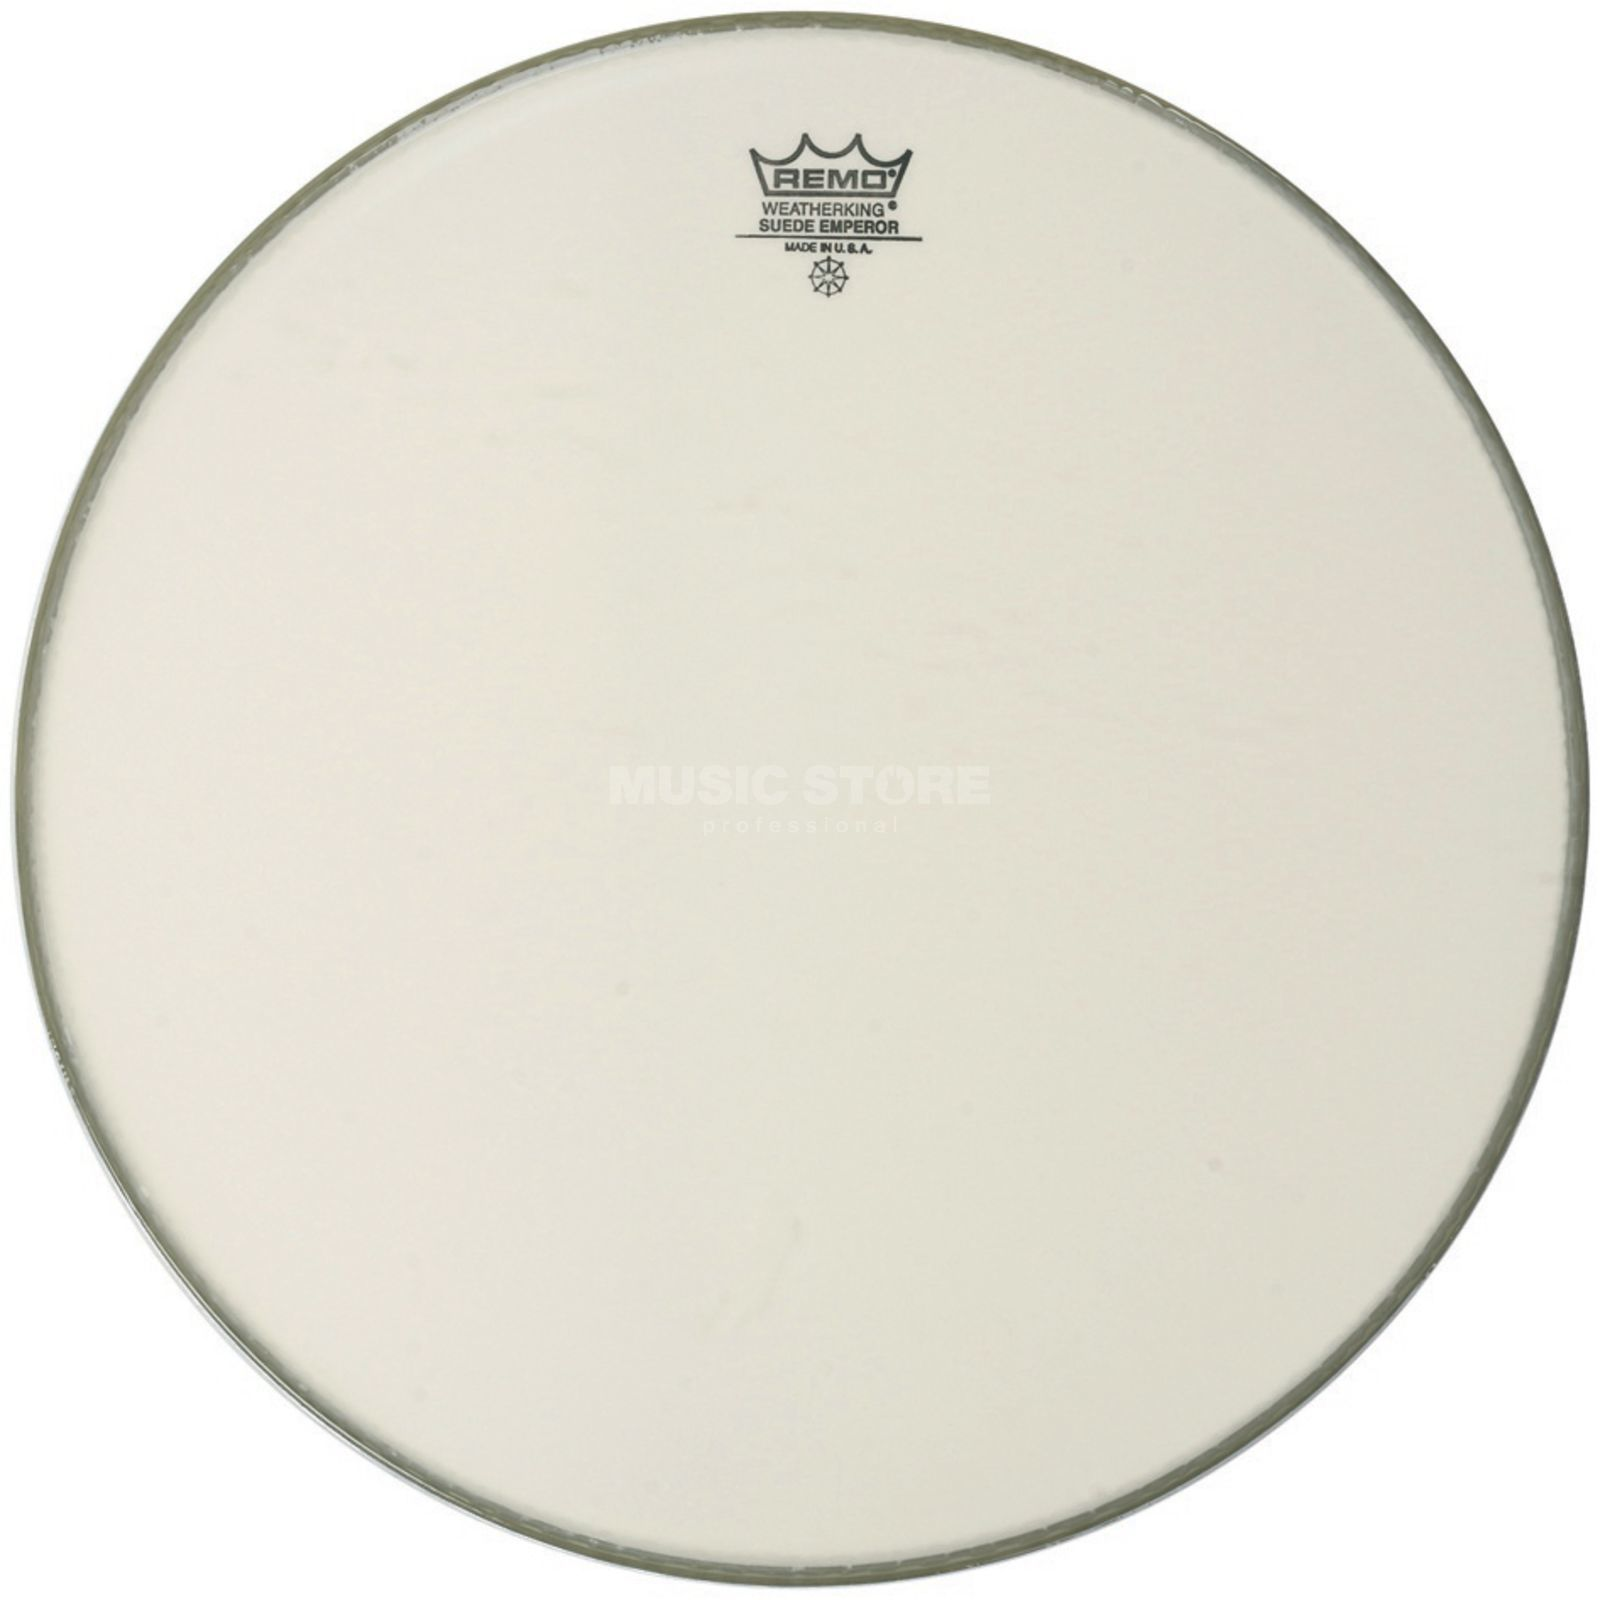 "Remo Emperor Suede 22"", BassDrum Batter/Reso Product Image"